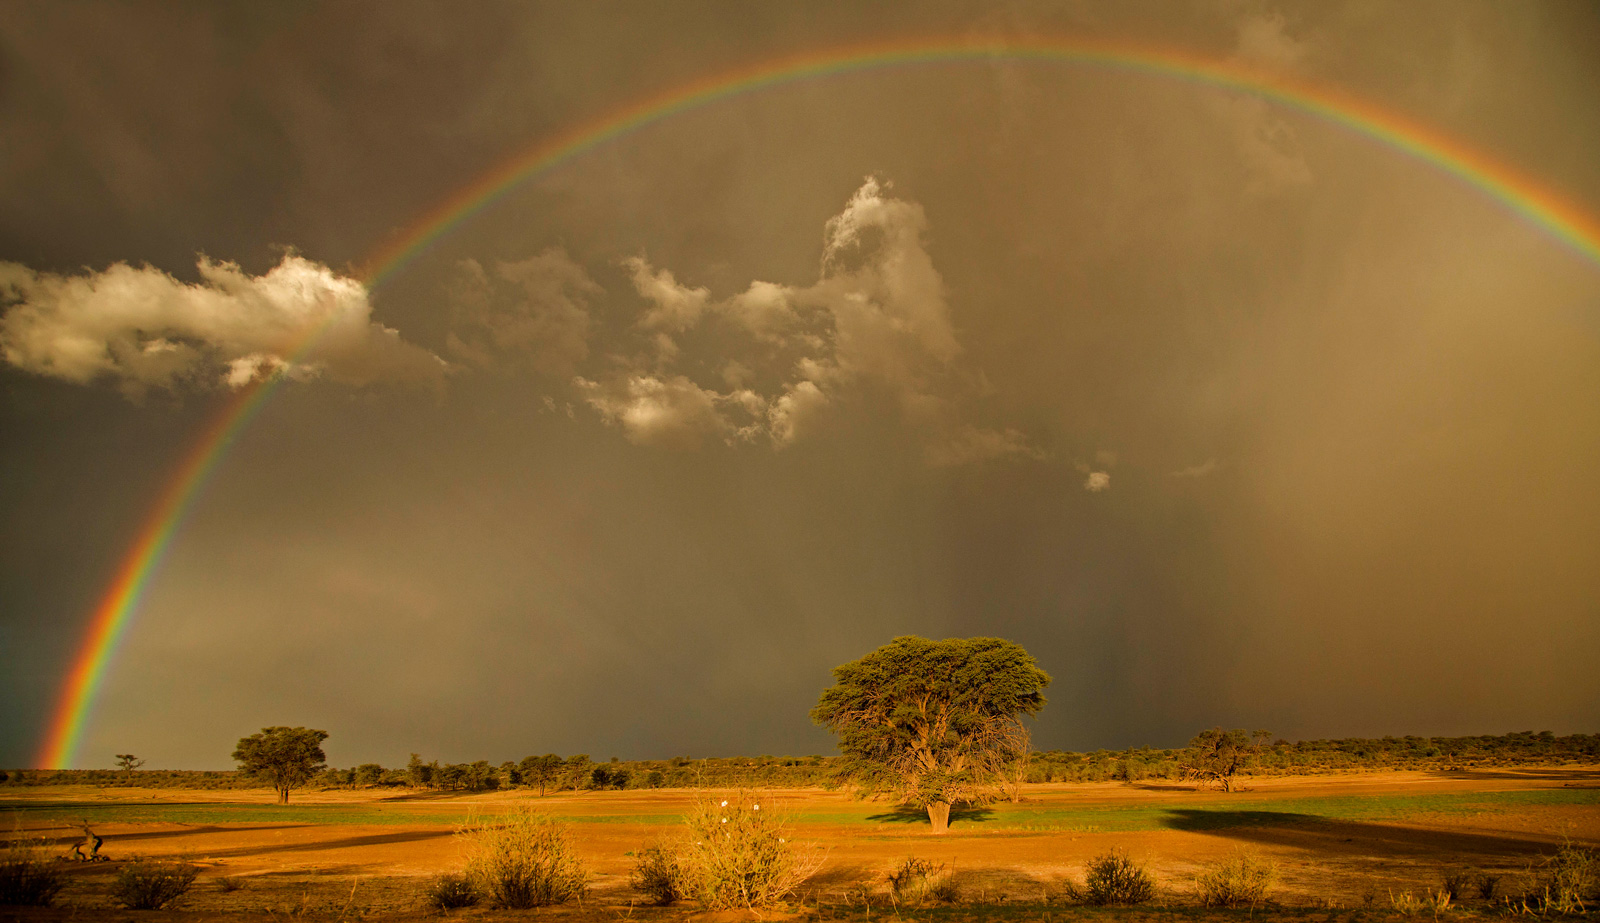 A rainbow appears after a storm near Nossob, Kgalagadi Transfrontier Park, South Africa ©Geo Jooste